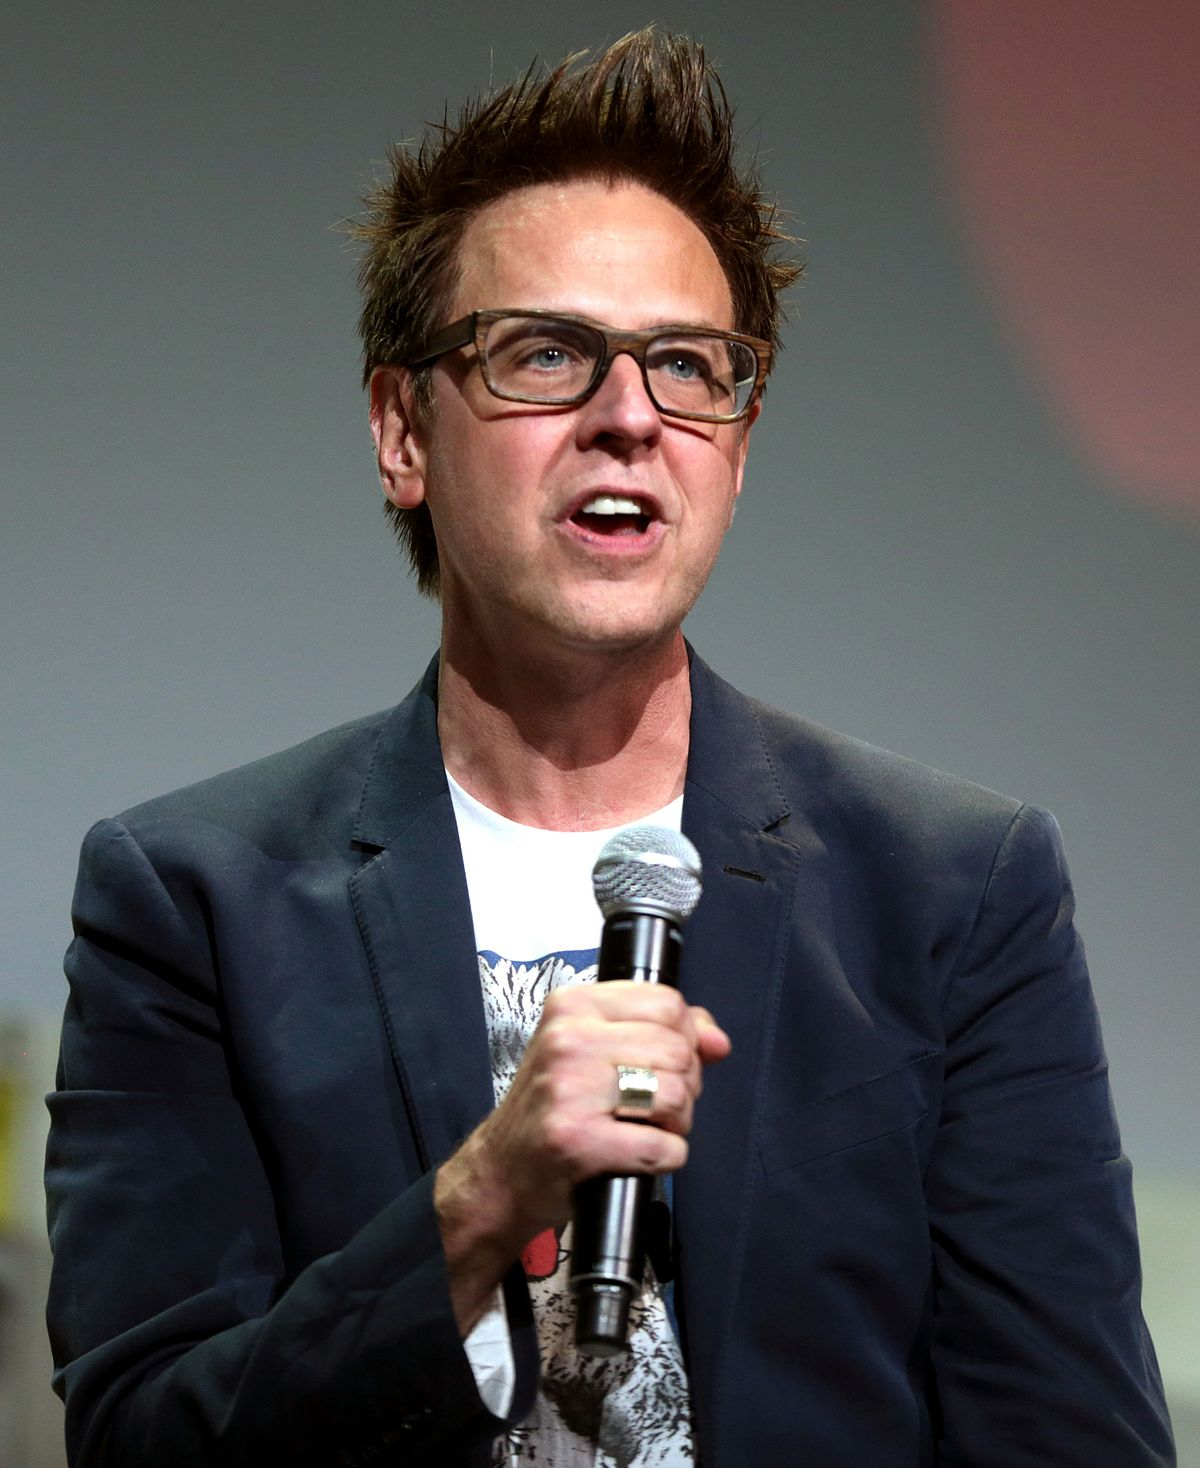 james gunn - photo #13